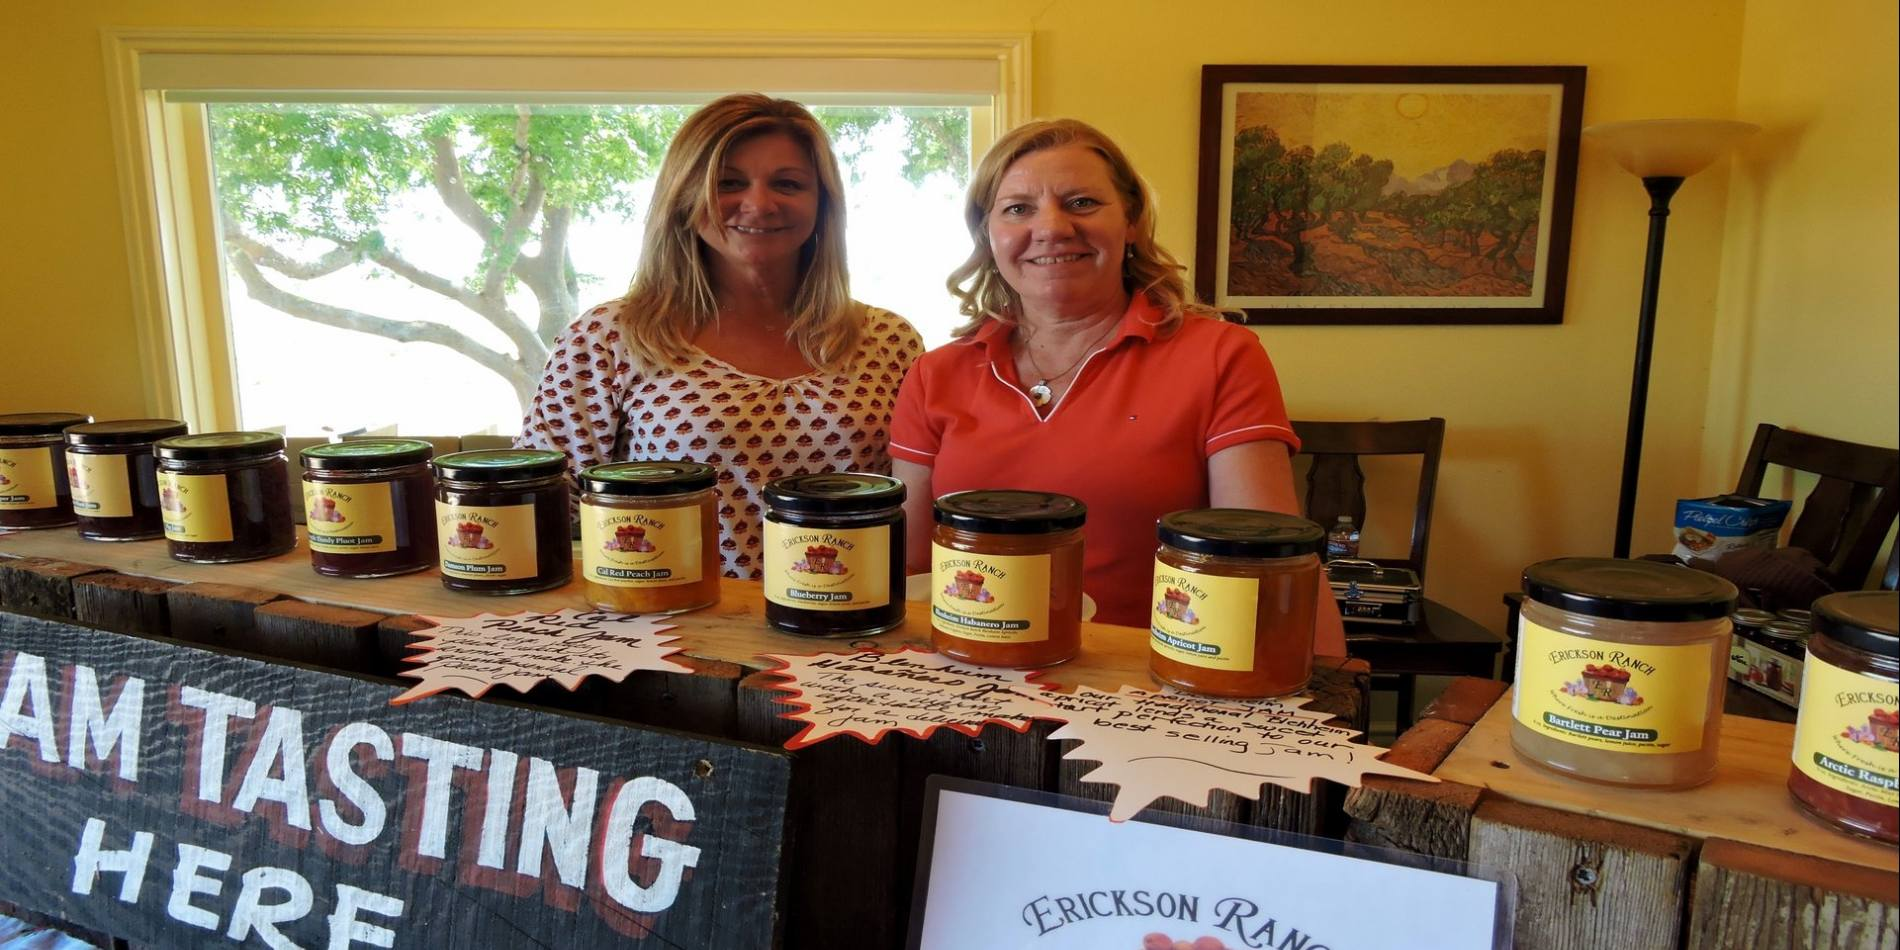 Their sweet and delicious jam varieties are all made with produce grown on the farm